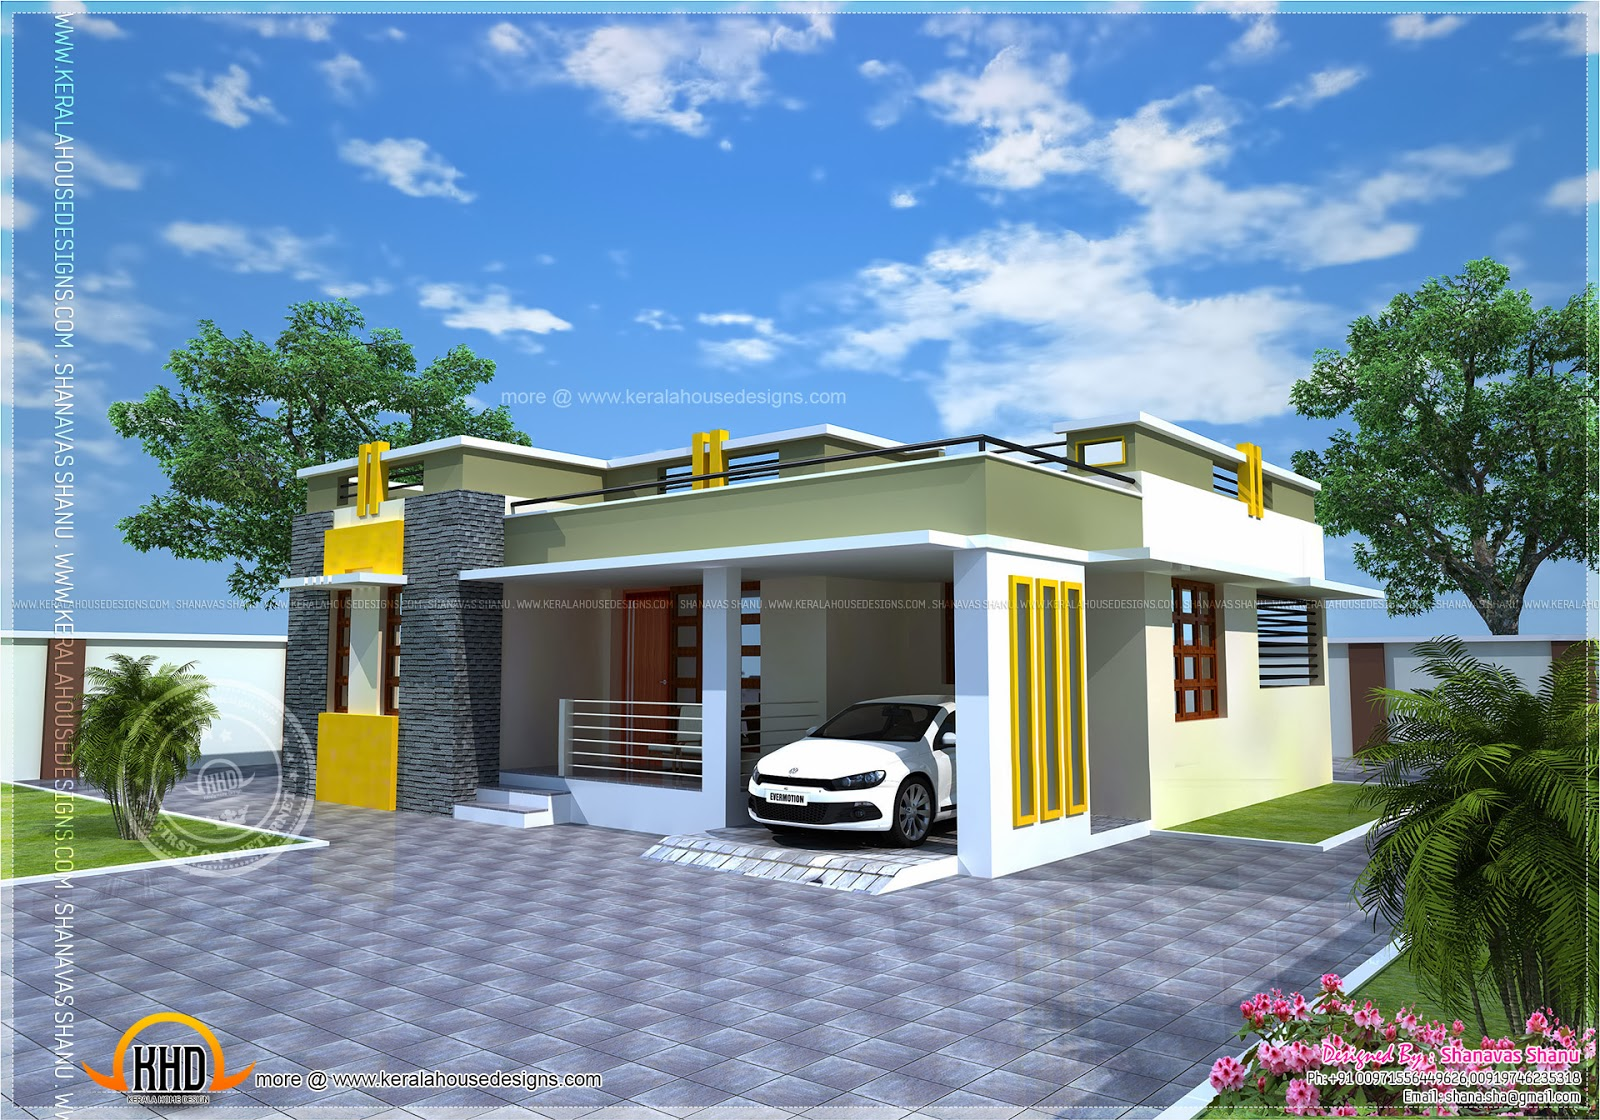 House plan of a small modern villa indian house plans for Kerala style villa plans